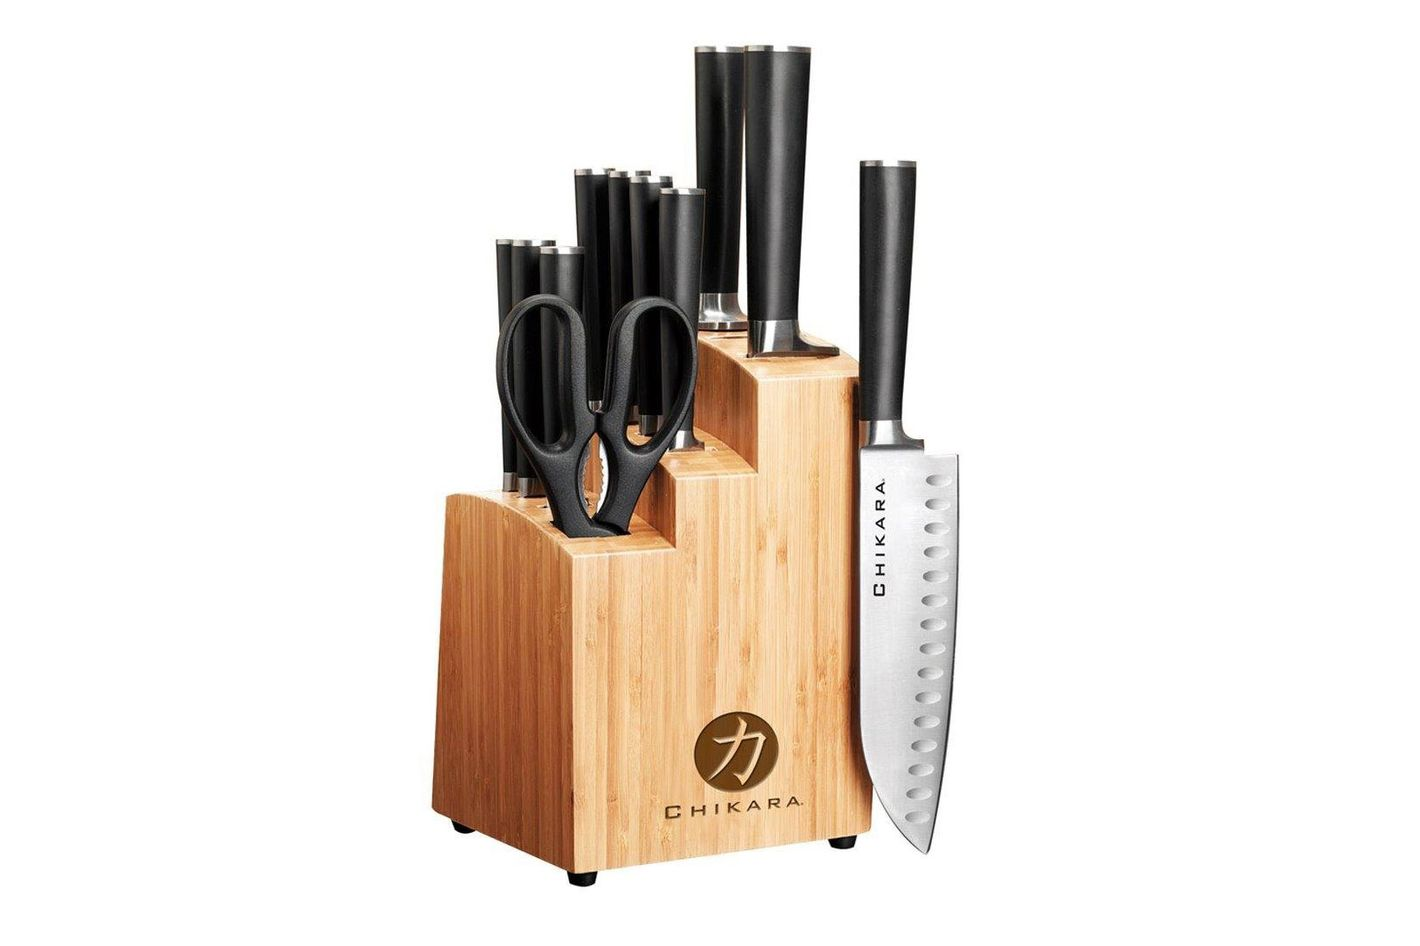 Ginsu Gourmet Chikara Series Forged 12-Piece Japanese Steel Knife Set